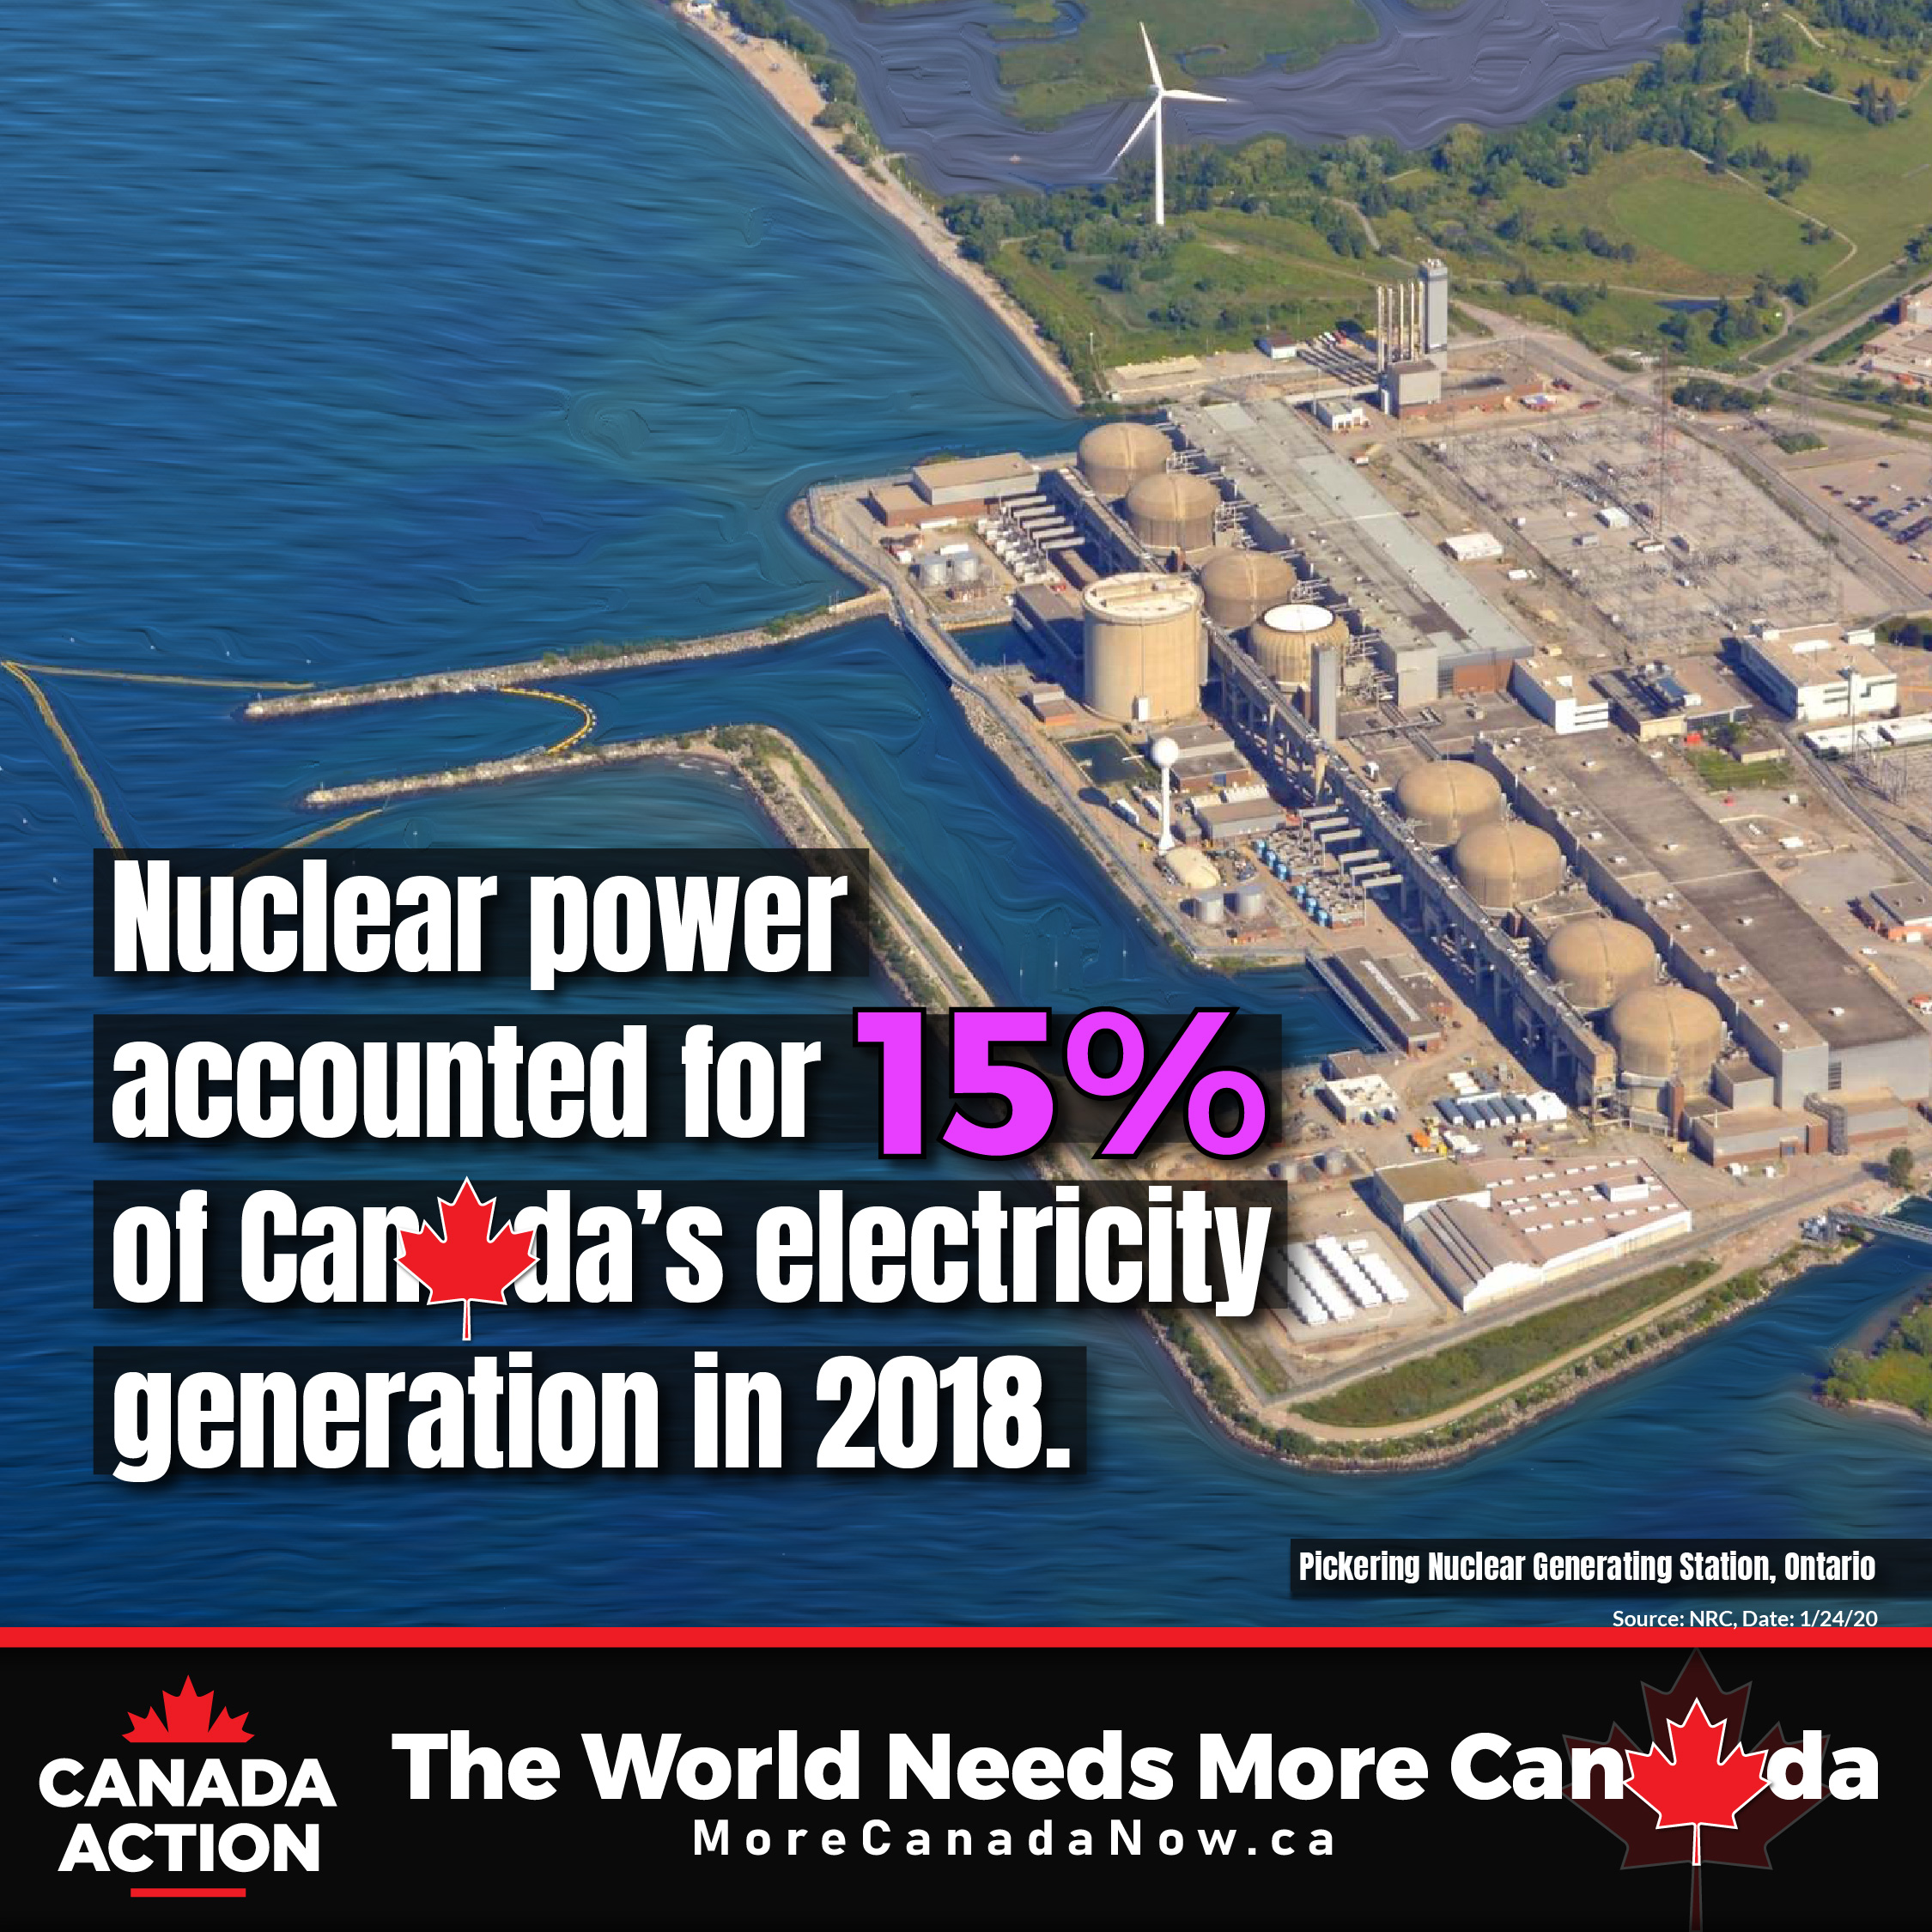 nuclear power in canada accounts for 15% of national electricity generation